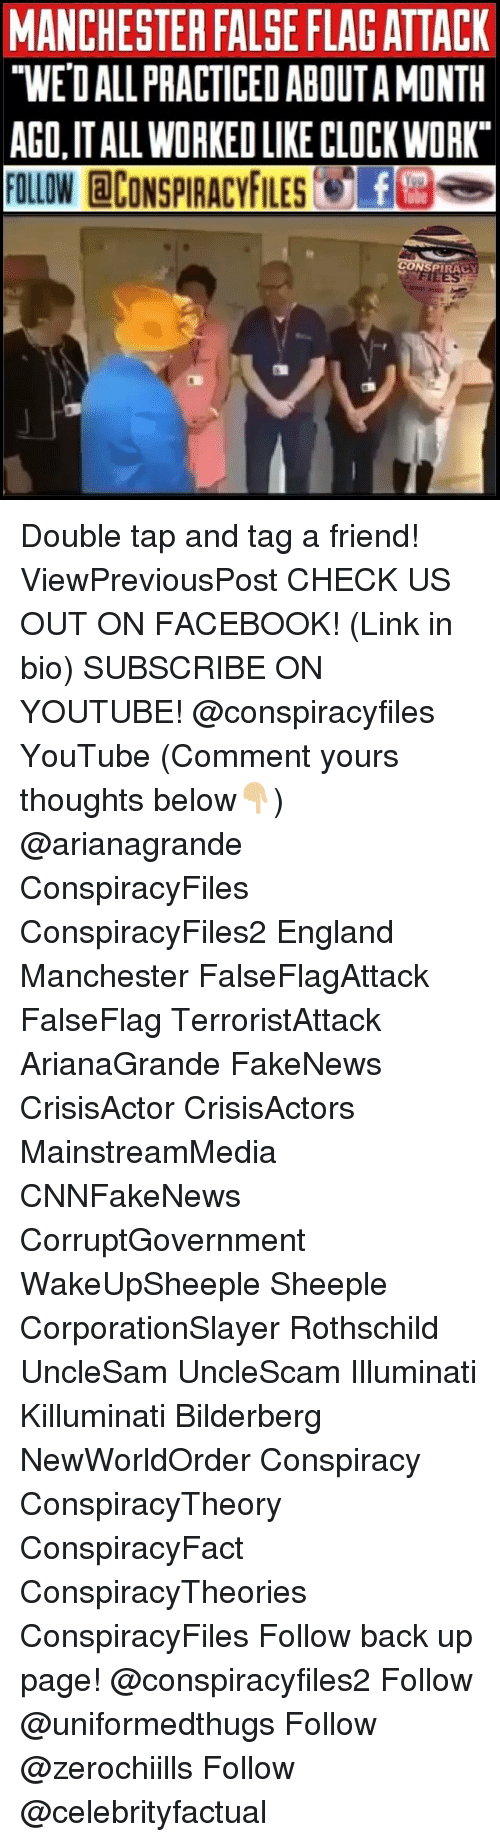 """killuminati: MANCHESTER FALSE FLAGATTACK  """"WE'D ALL PRACTICED ABOUTA MONTH  AGO,IT ALL WORKED LIKE CLOCKWORK  FOLLOW @CONSPIRACYFILESTE塁。  ONS  PIRACY Double tap and tag a friend! ViewPreviousPost CHECK US OUT ON FACEBOOK! (Link in bio) SUBSCRIBE ON YOUTUBE! @conspiracyfiles YouTube (Comment yours thoughts below👇🏼) @arianagrande ConspiracyFiles ConspiracyFiles2 England Manchester FalseFlagAttack FalseFlag TerroristAttack ArianaGrande FakeNews CrisisActor CrisisActors MainstreamMedia CNNFakeNews CorruptGovernment WakeUpSheeple Sheeple CorporationSlayer Rothschild UncleSam UncleScam Illuminati Killuminati Bilderberg NewWorldOrder Conspiracy ConspiracyTheory ConspiracyFact ConspiracyTheories ConspiracyFiles Follow back up page! @conspiracyfiles2 Follow @uniformedthugs Follow @zerochiills Follow @celebrityfactual"""